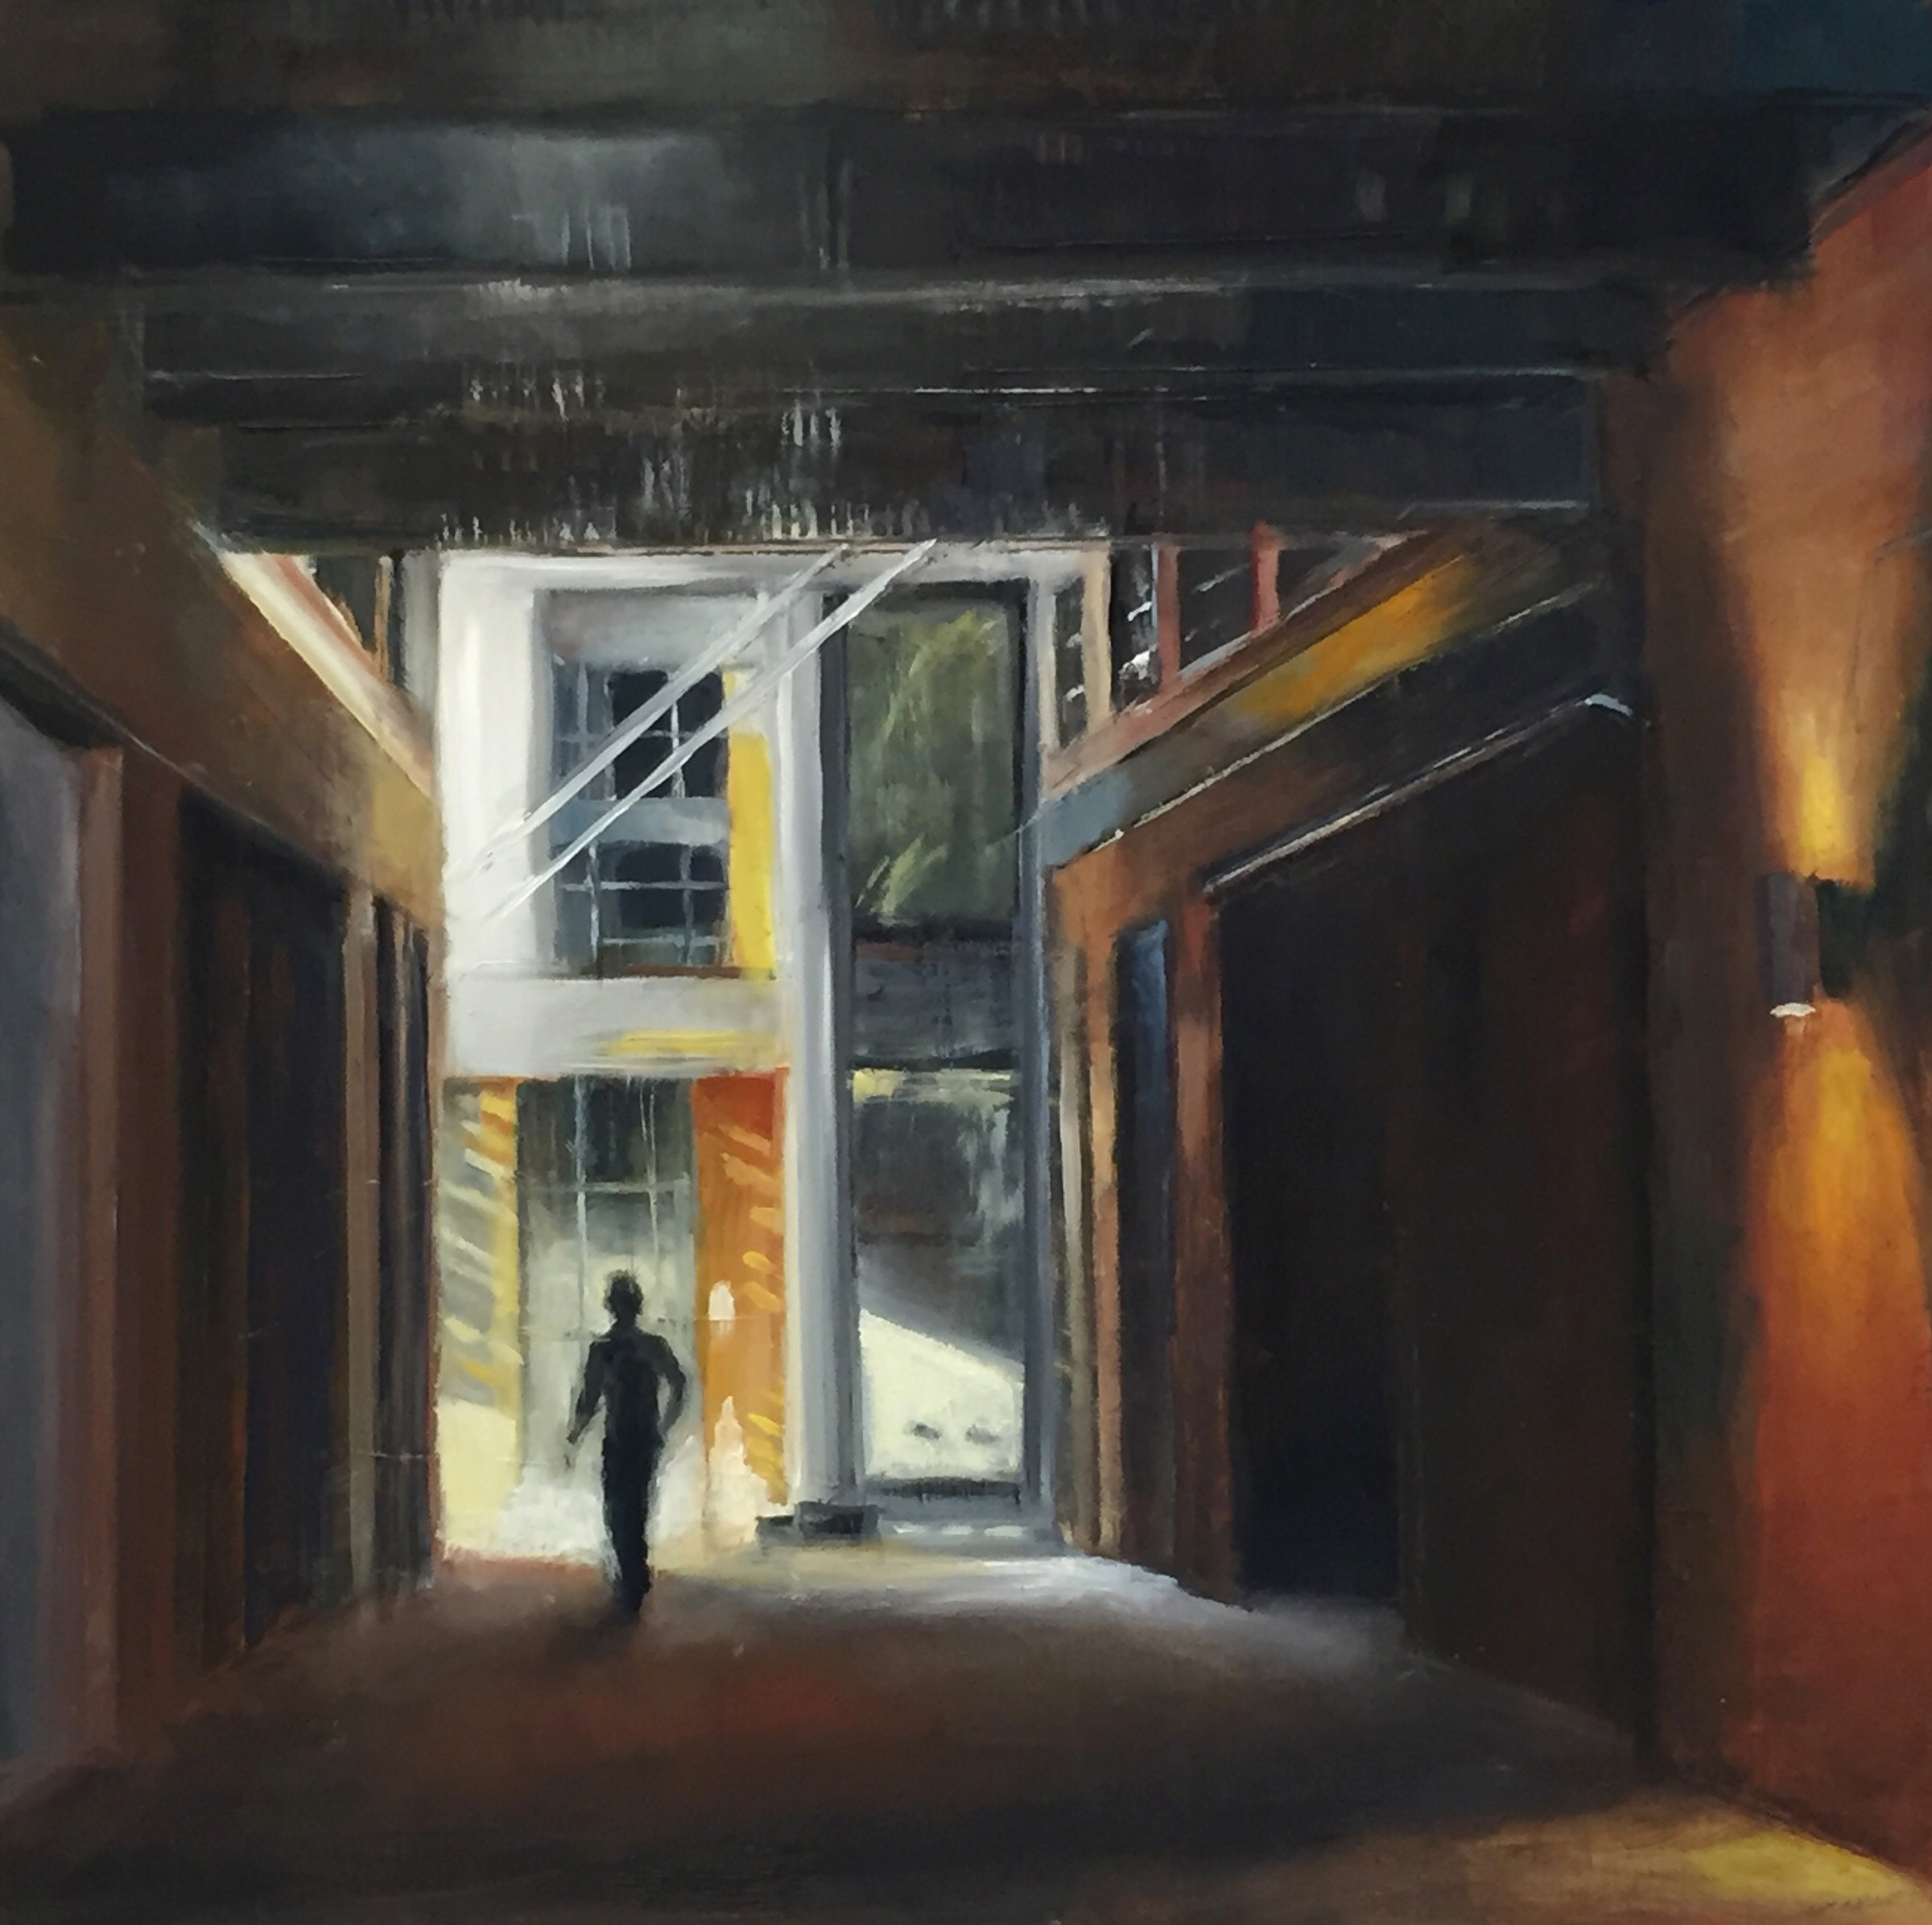 GalleryOonH-Cathy Abramson-Wharf Alley-2018-Oil on Canvas-12x12-600.jpg